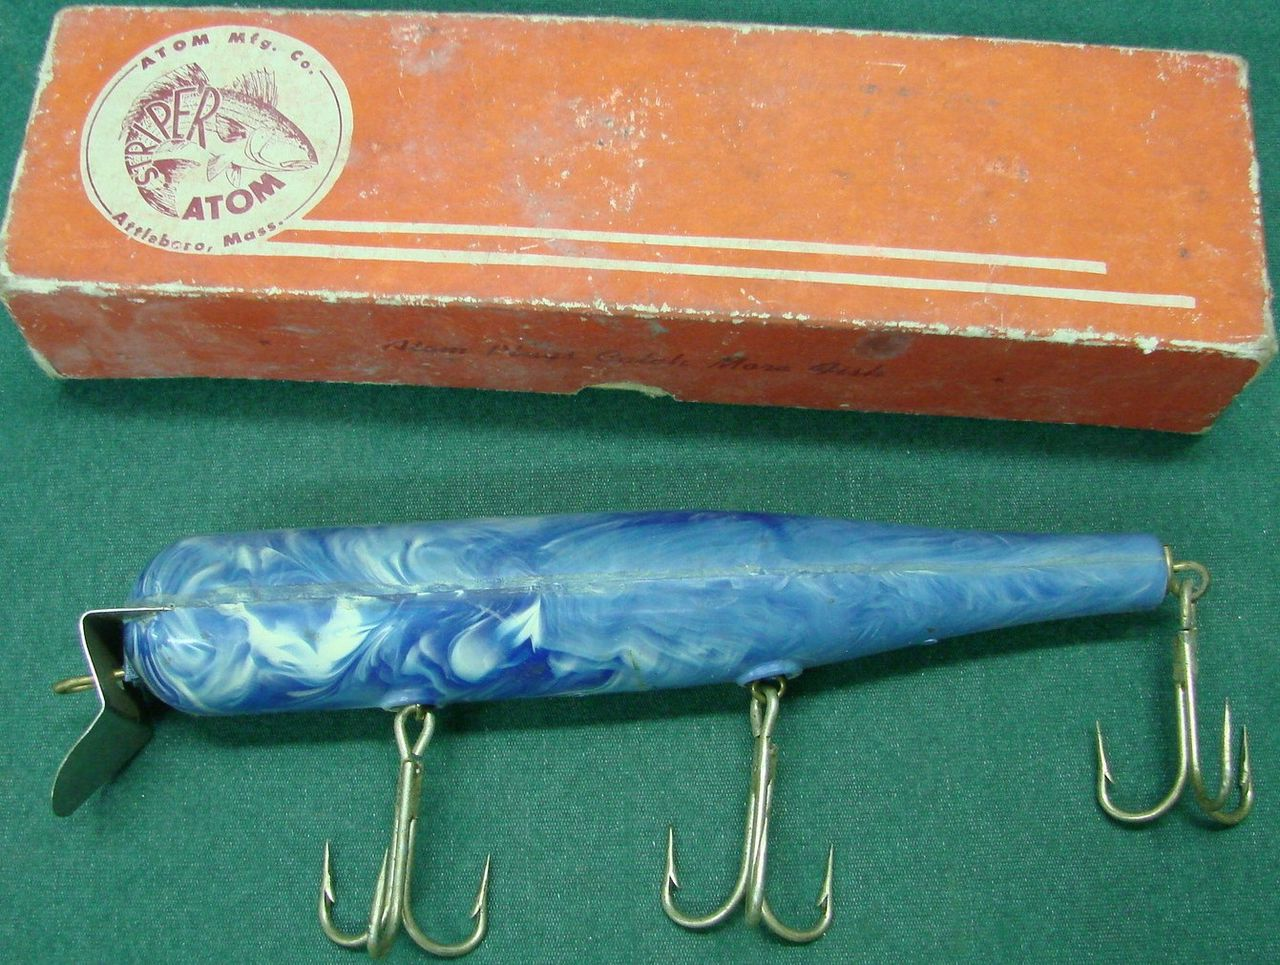 Vintage Striper Atom Saltwater Fishing Lure